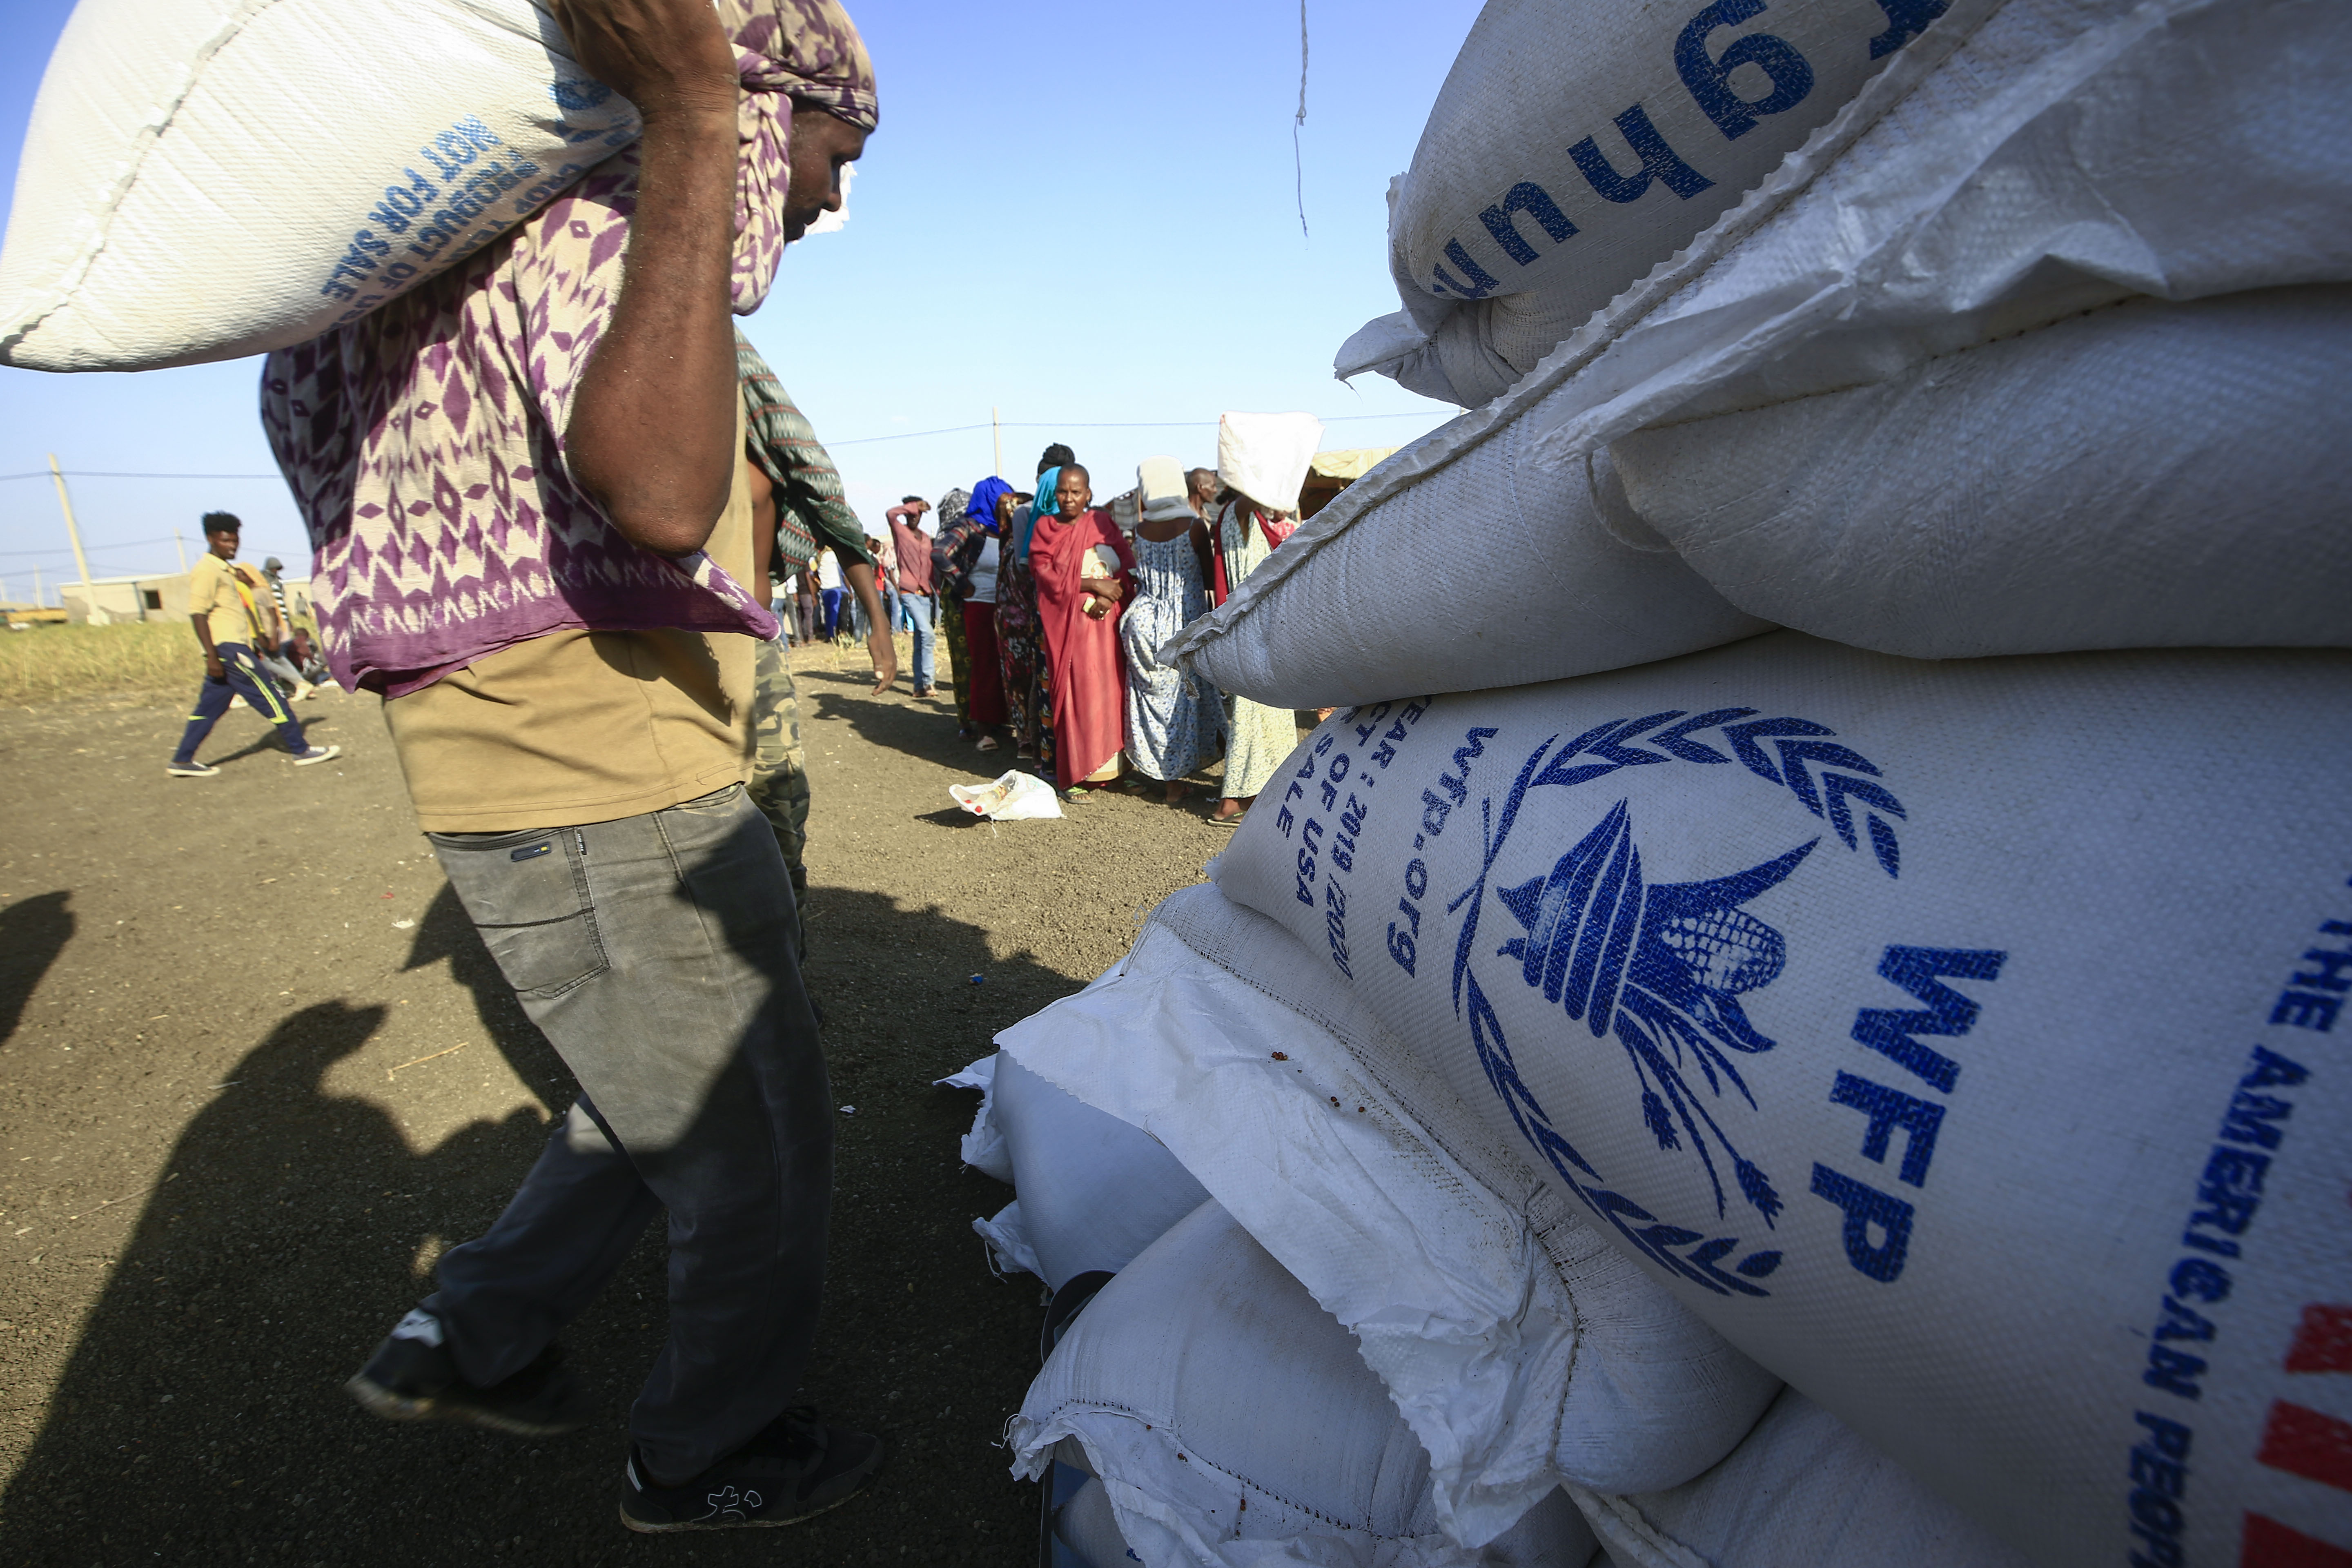 Ethiopian refugees who fled fighting in the Tigray Region watch workers unload World Food Programme food aid at the Village 8 border reception center in Sudan's eastern Gedaref State, on November 20, 2020.